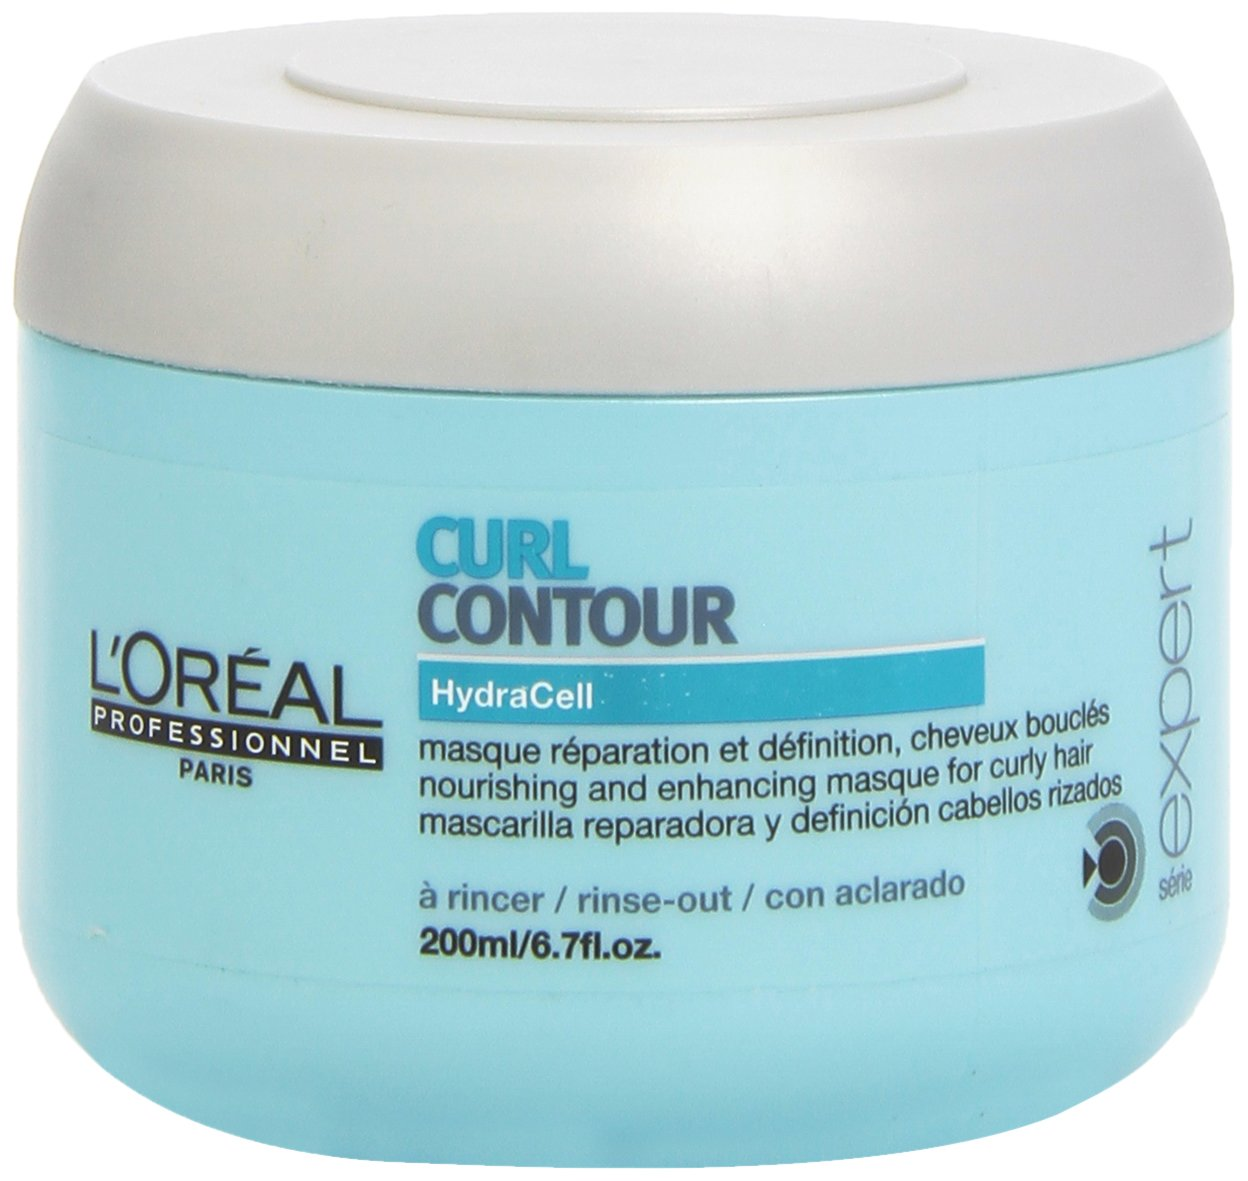 L'Oreal Serie Expert Curl Masque 200 ml L' OREAL 555391 38188